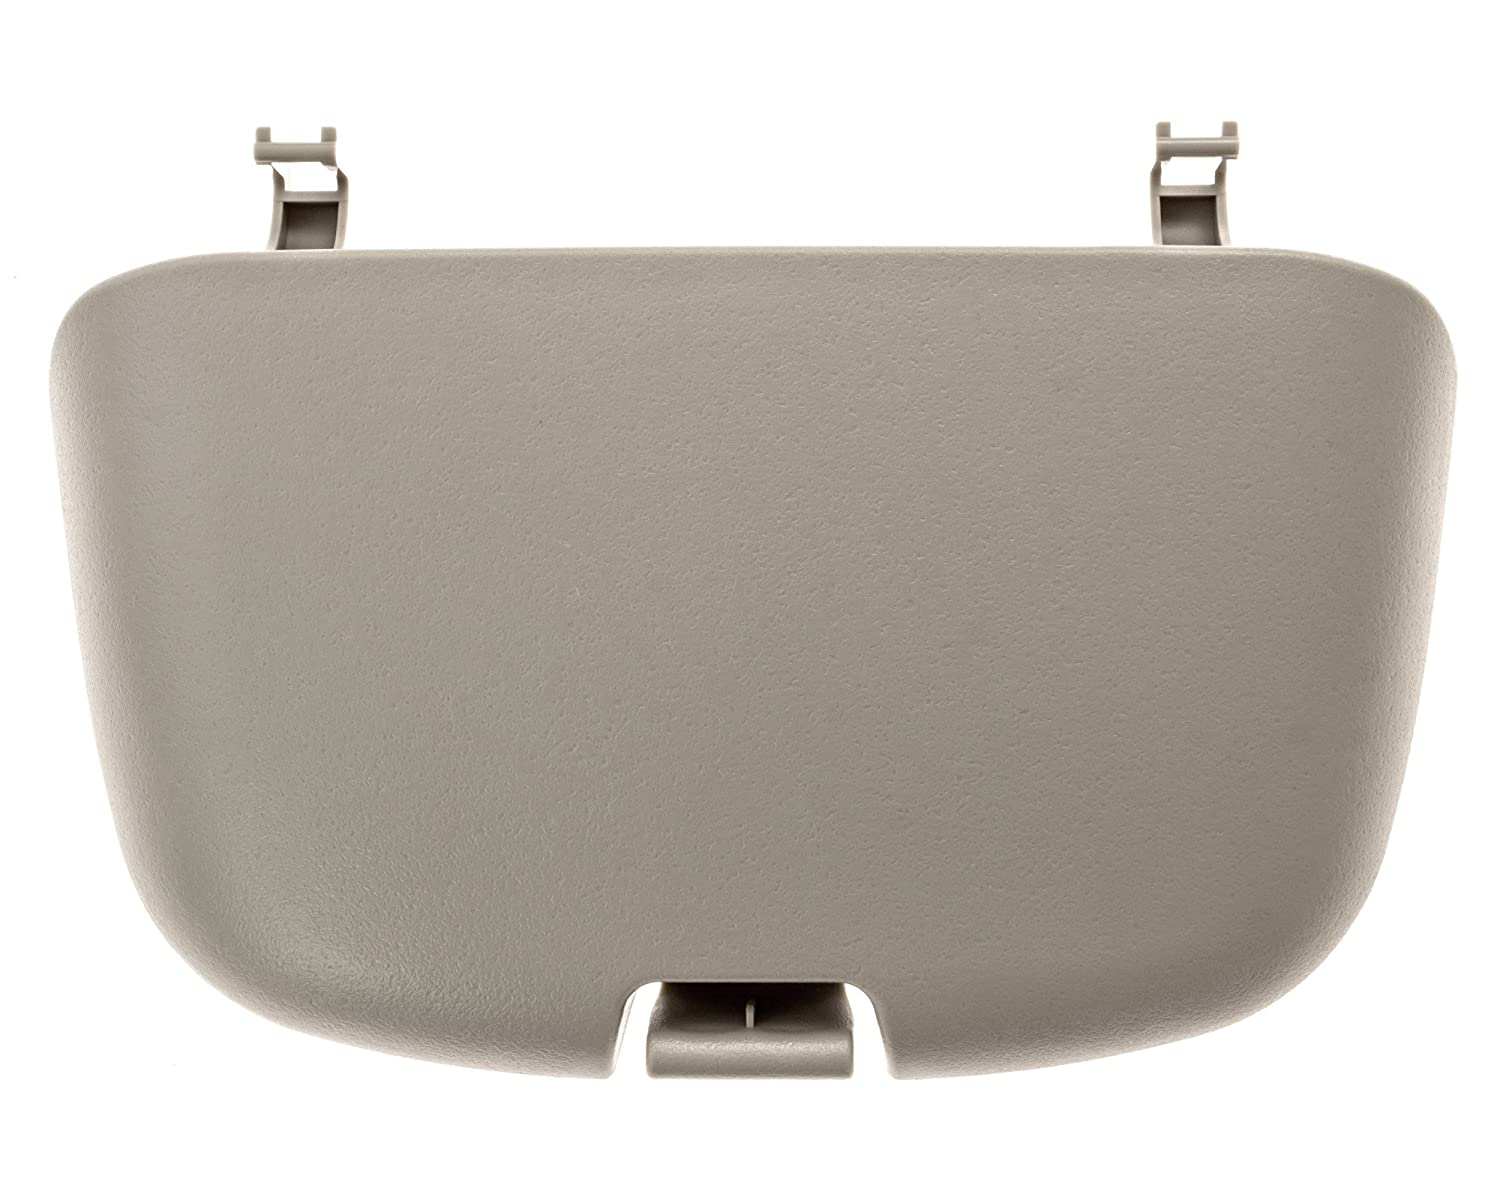 With New /& Improved Latch Day One Automotive Dodge Ram 99-01 Overhead Console Sunglass Holder Bin SN96TL2AA